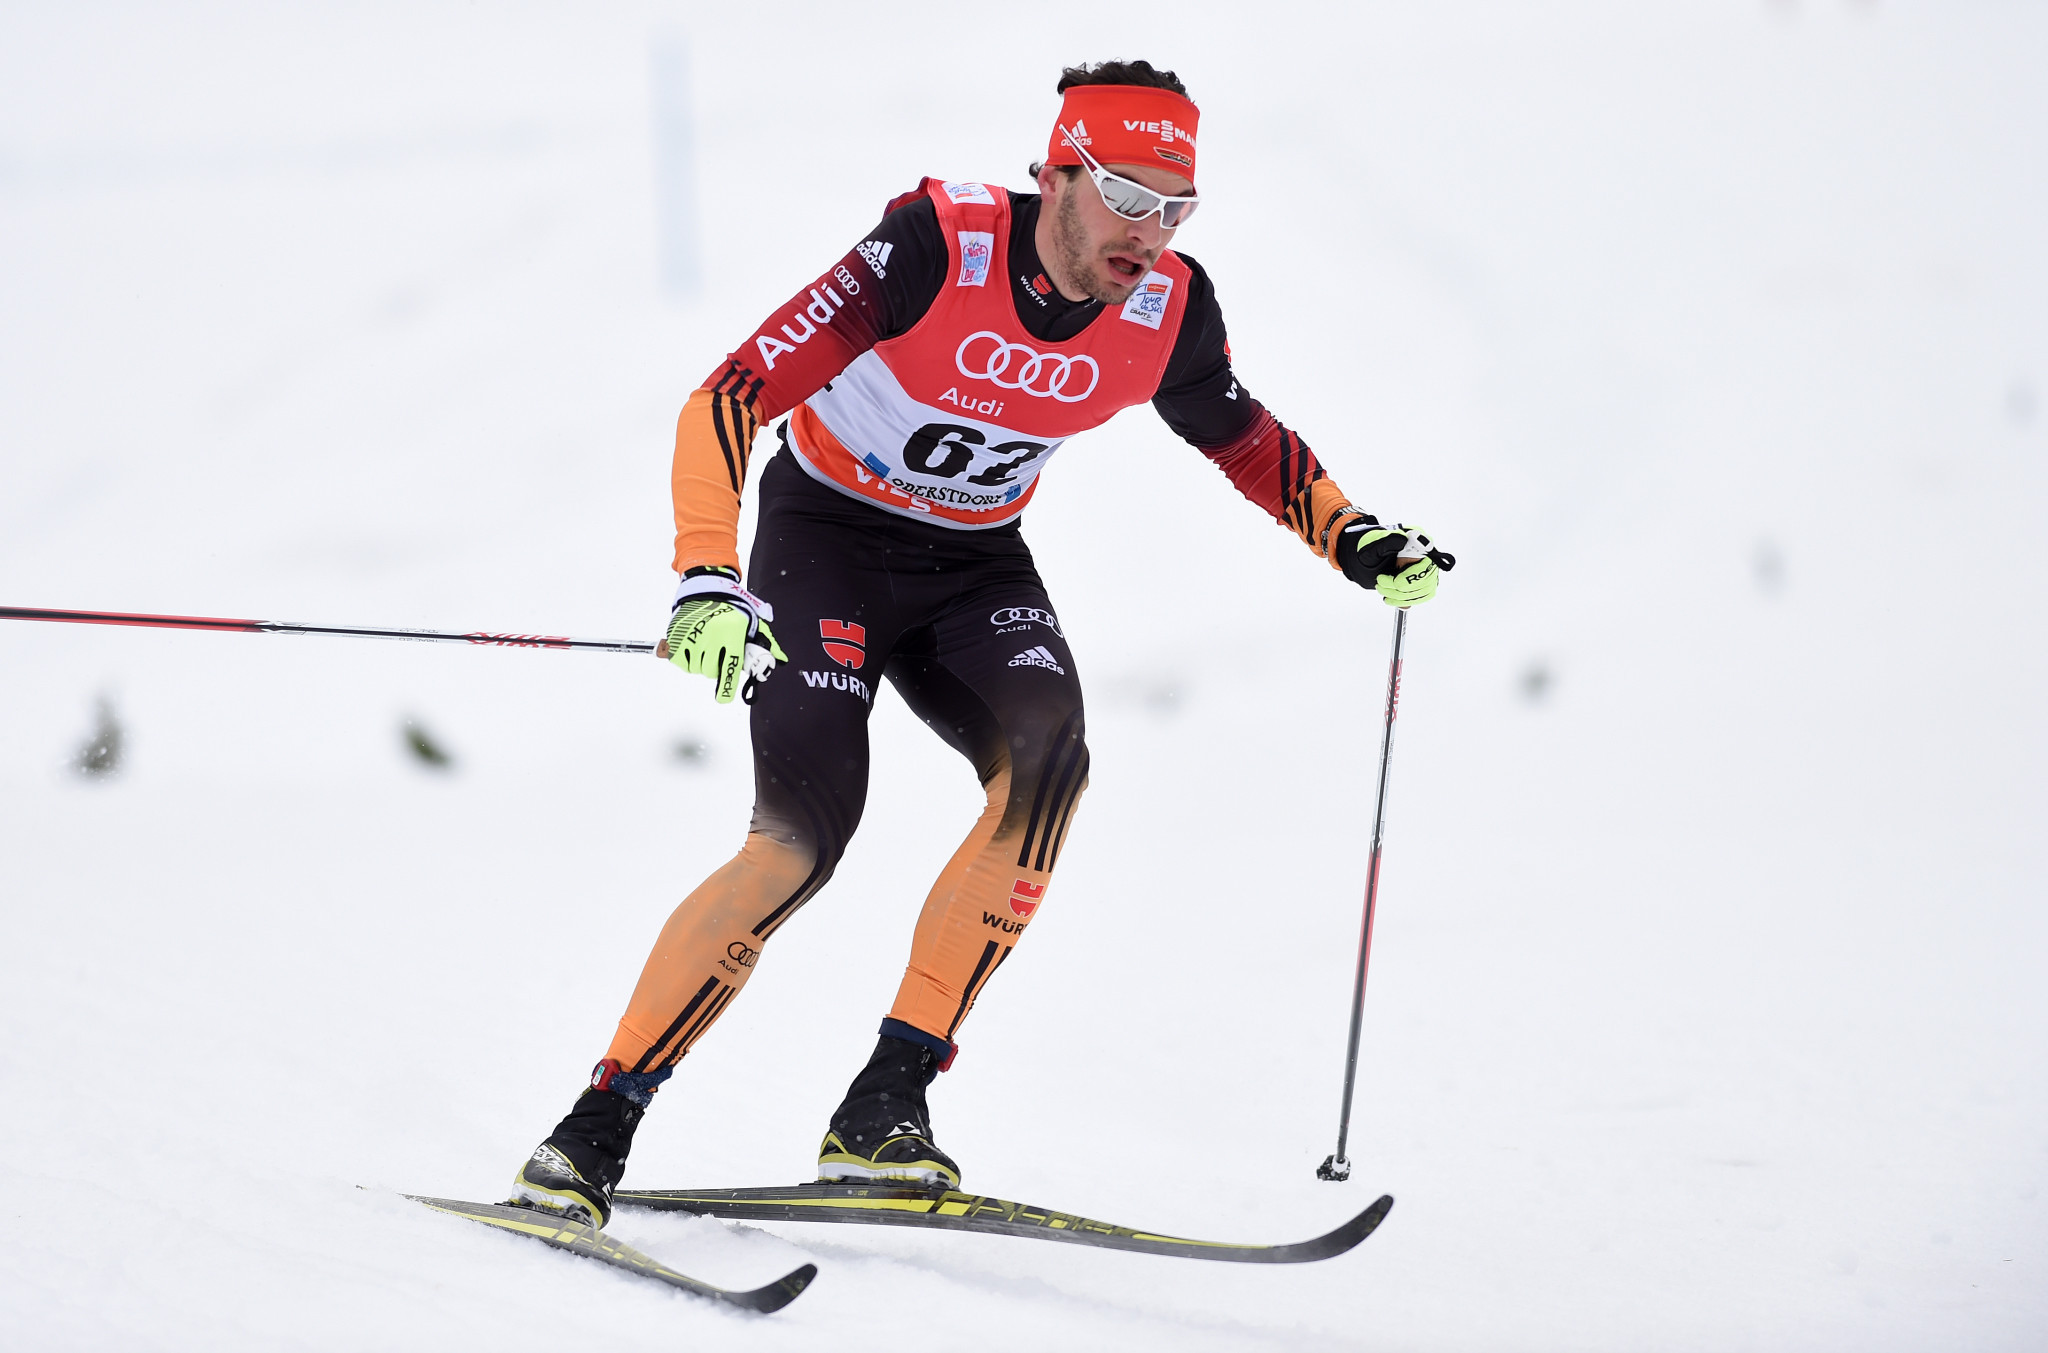 German cross-country skier Dotzler retires at age of 27